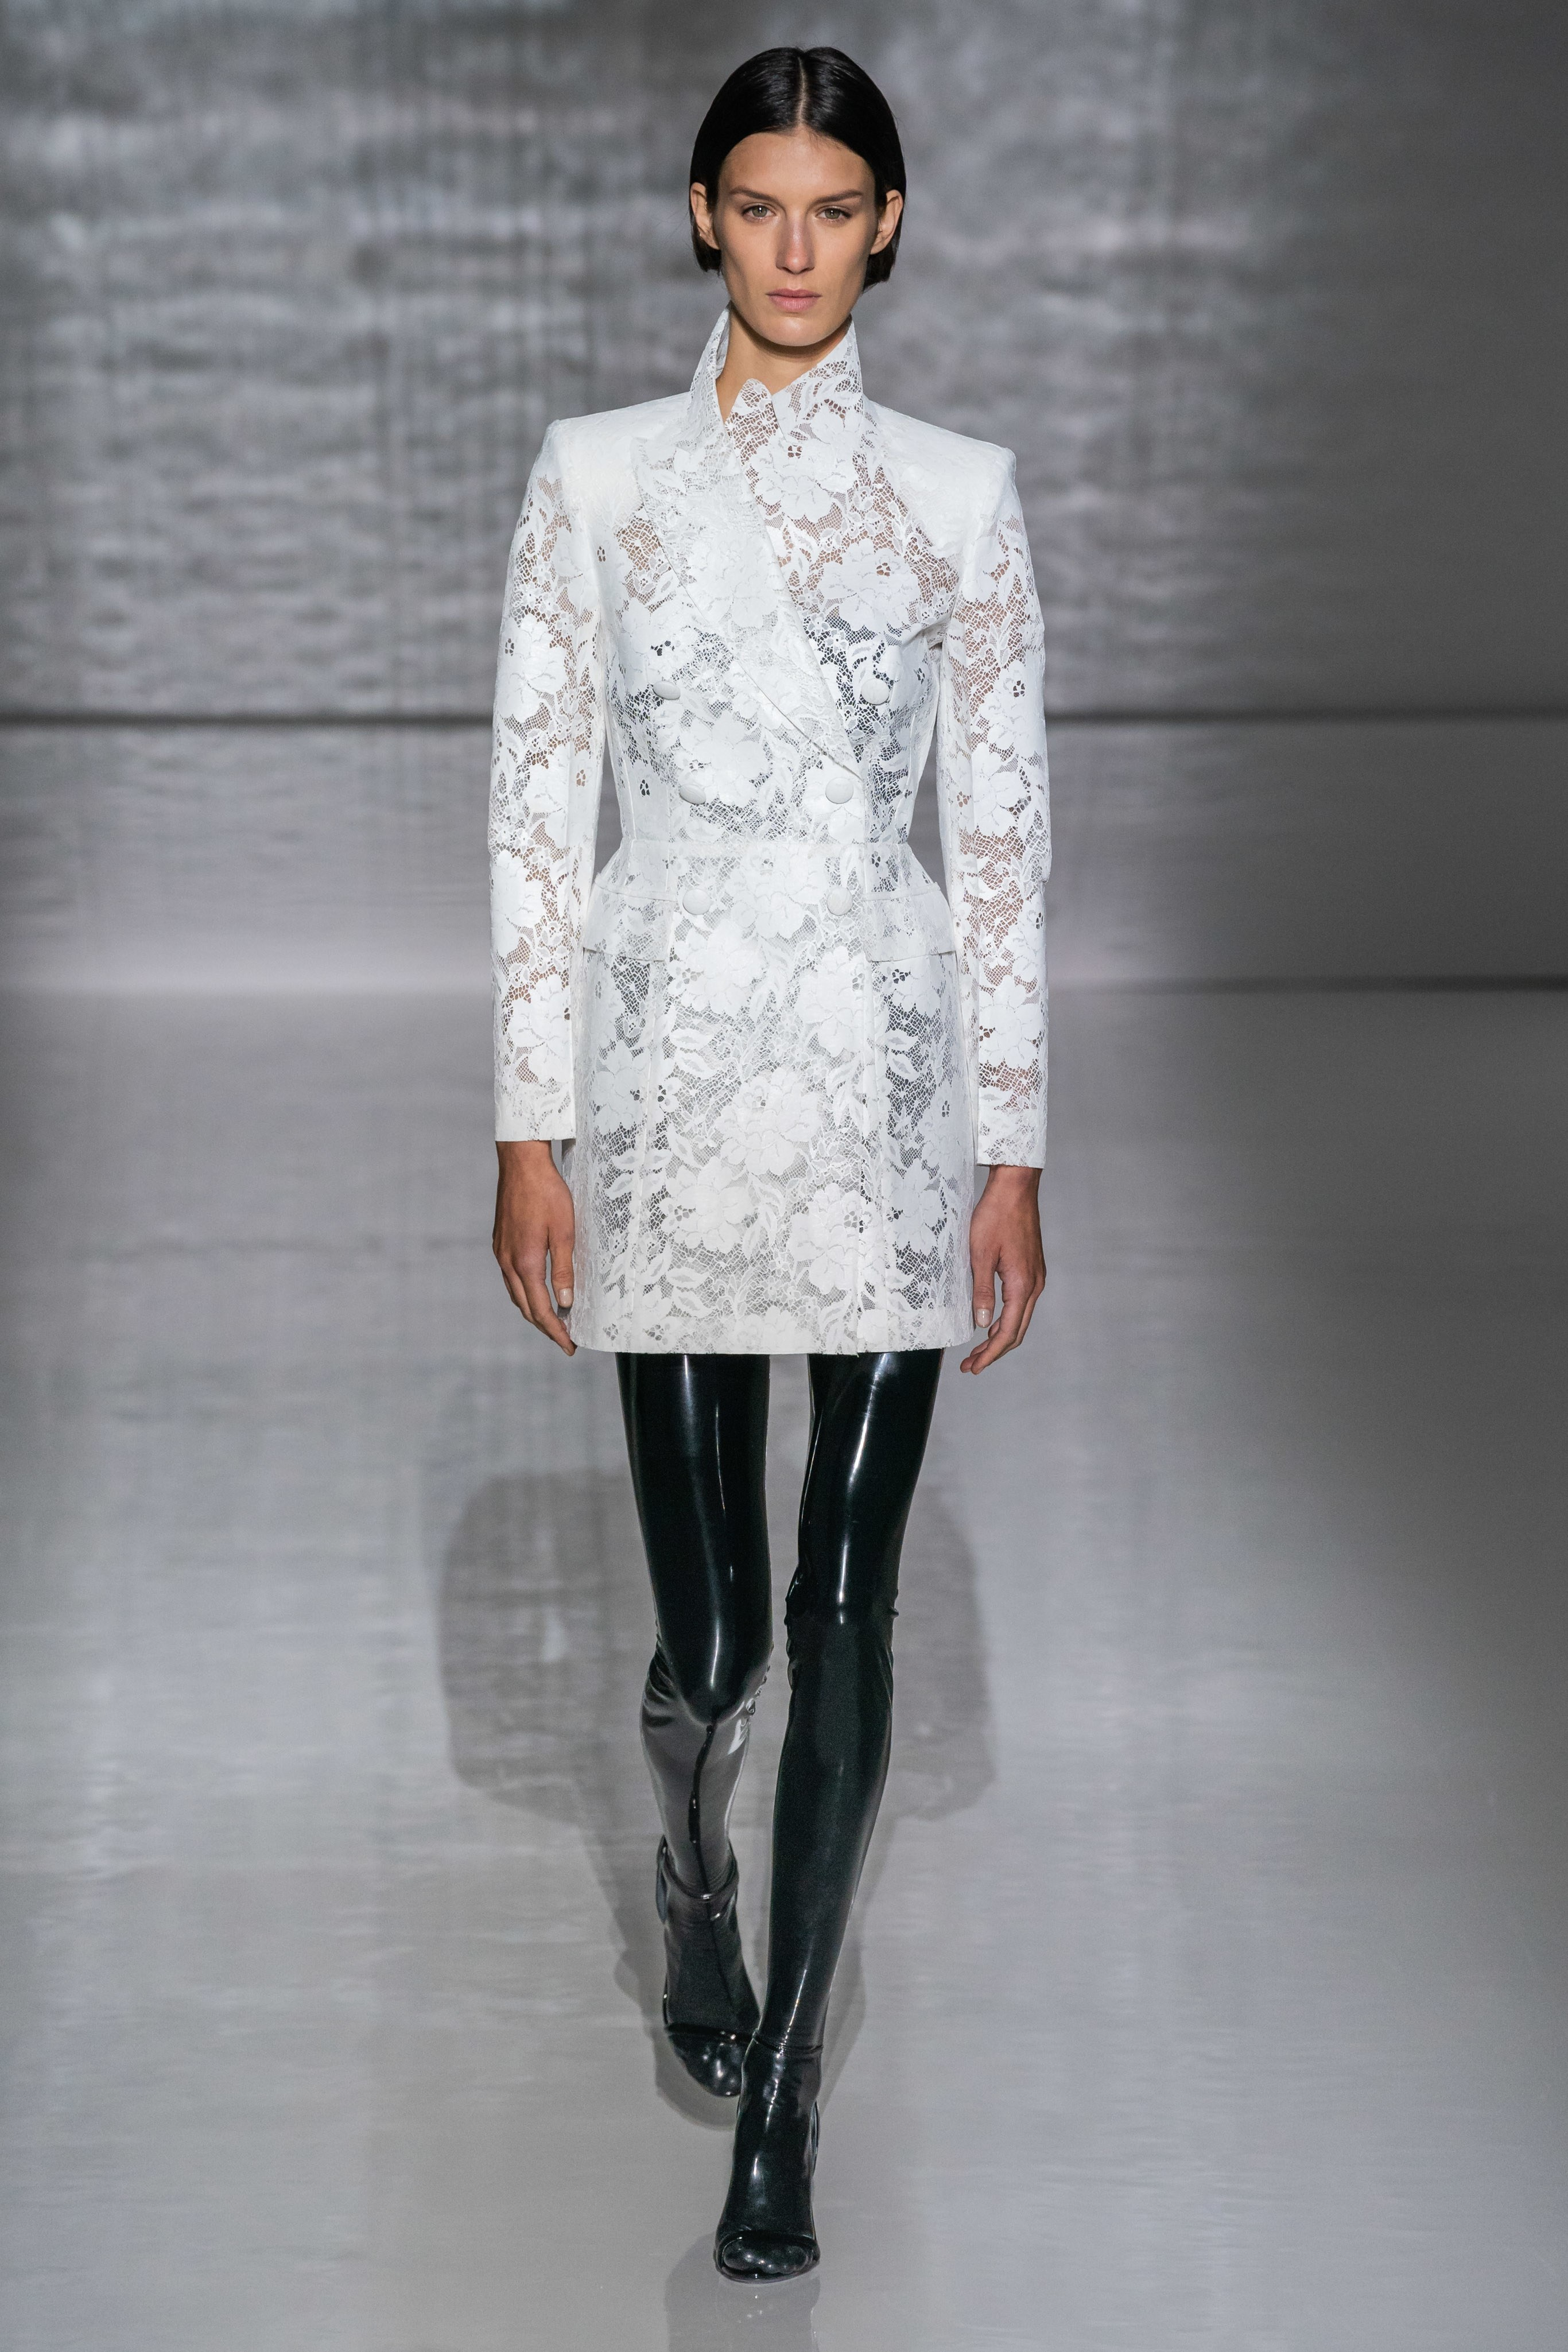 GIVENCHY COUTURE SS19